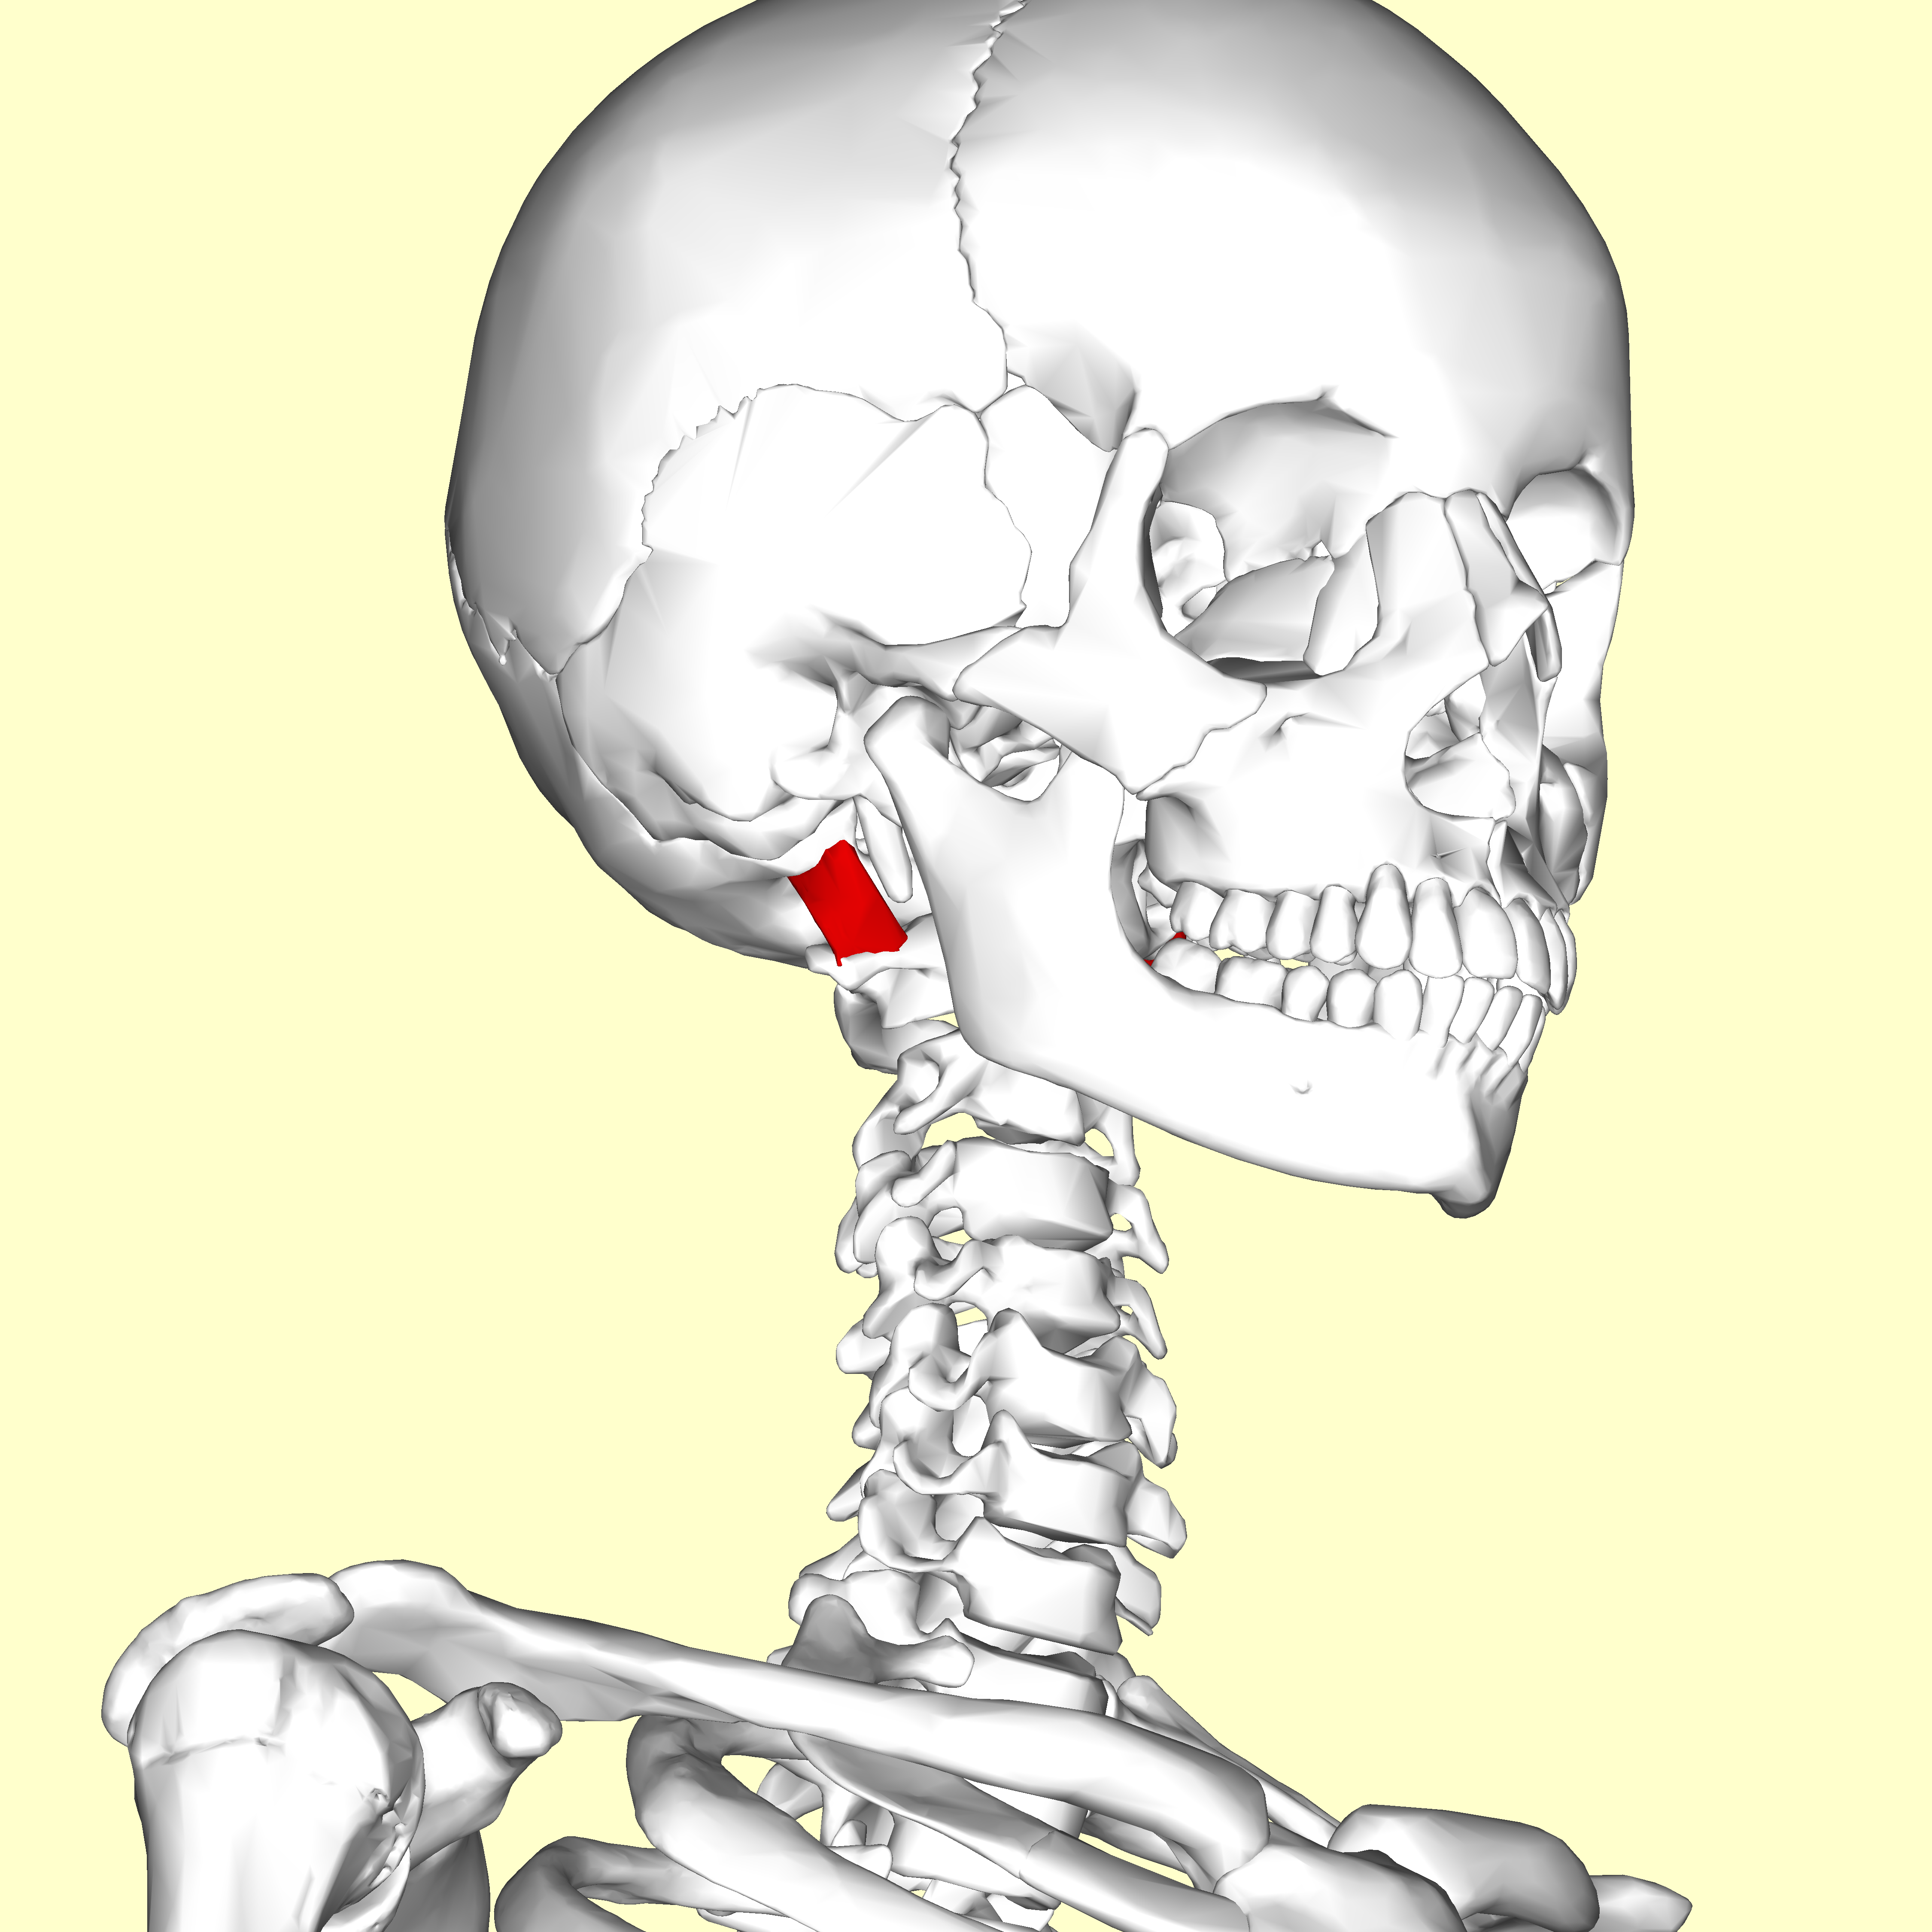 File:Rectus capitis lateralis muscle04.png - Wikimedia Commons